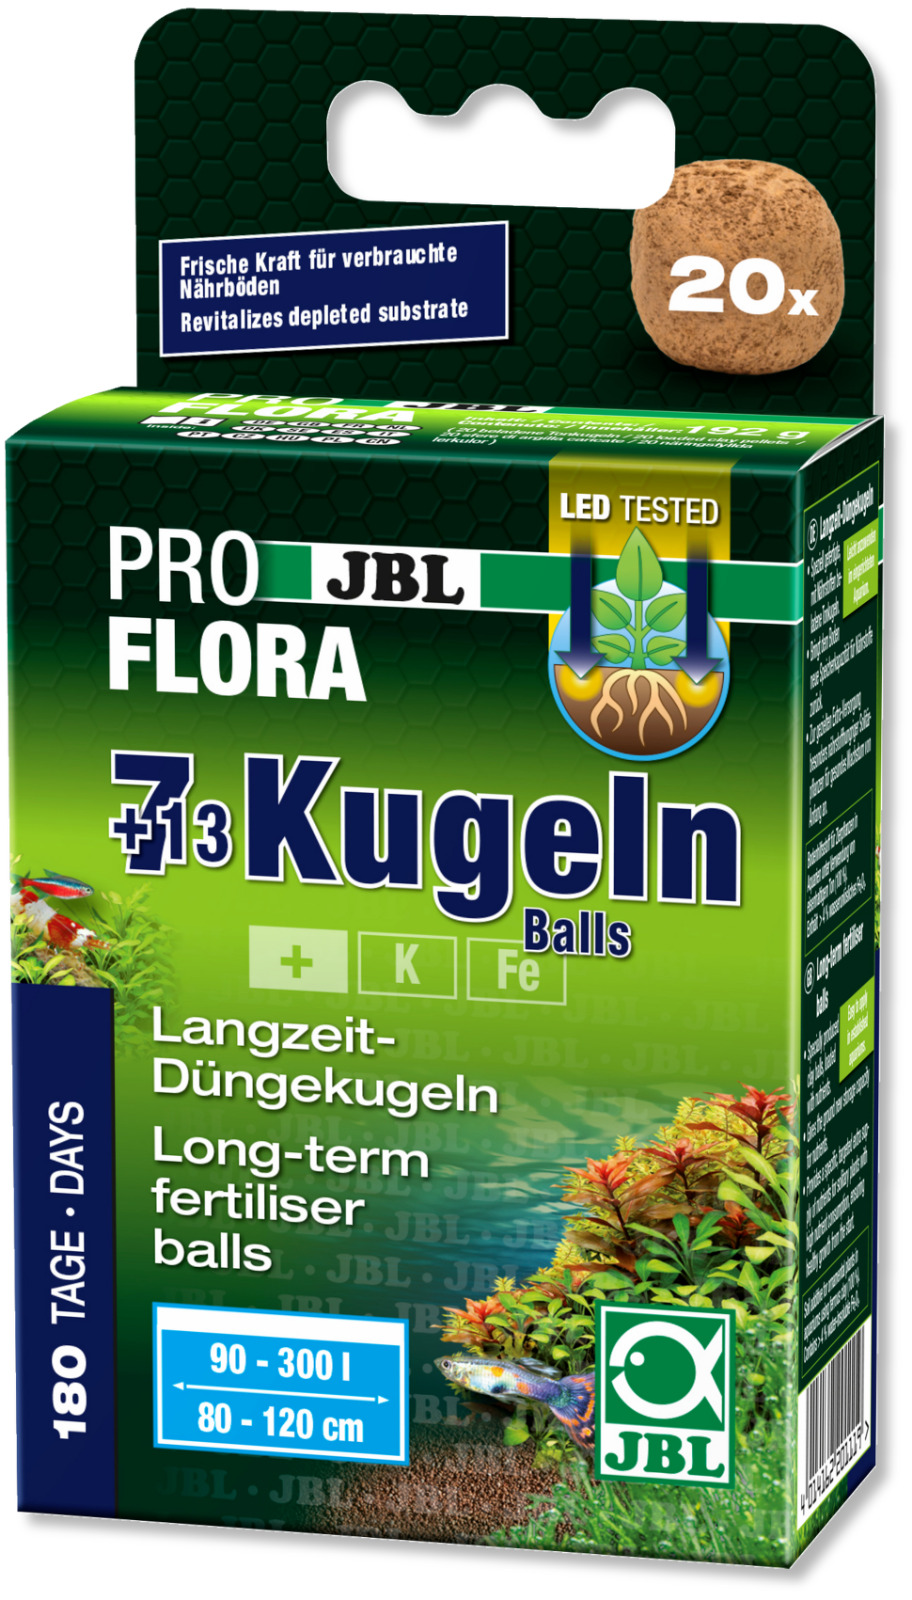 JBL The 7+13 Balls- root fertiliser planted tank nutrient iron mineral substrate